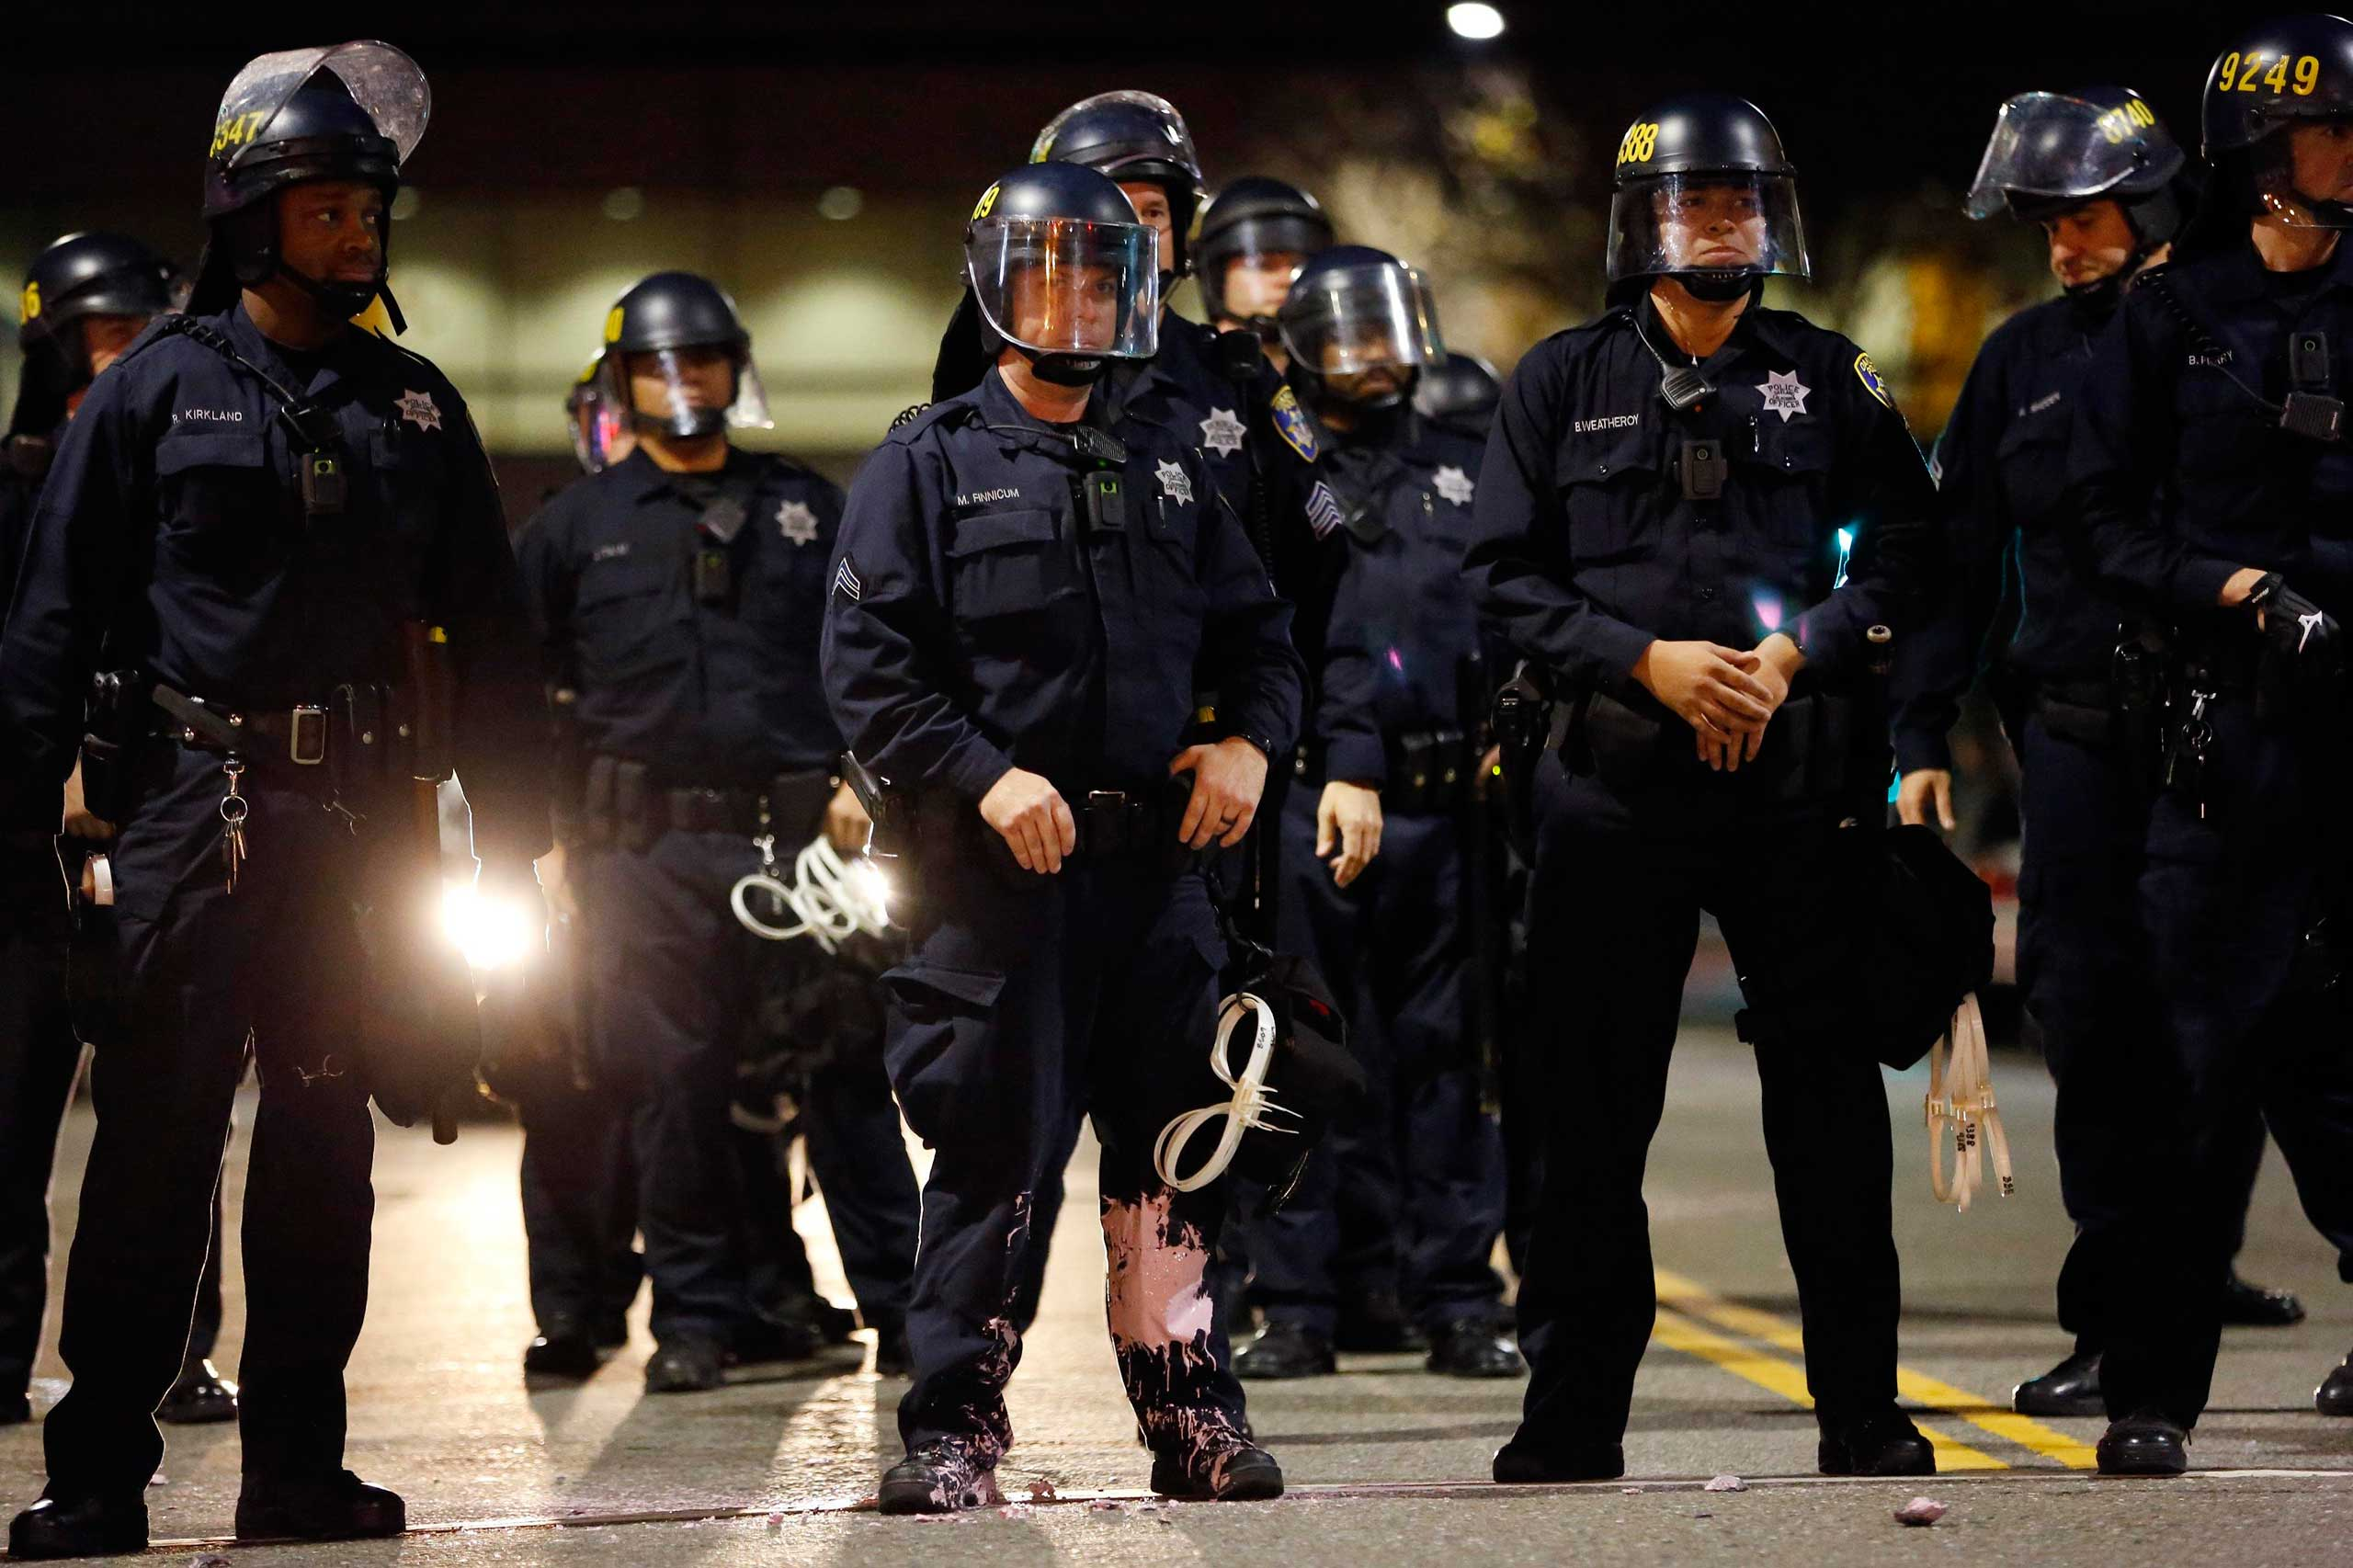 A police officer looks into the crowd, after he was hit on the leg with paint thrown by protesters during an evening demonstration against police violence in Oakland, Calif. on Dec. 13, 2014.